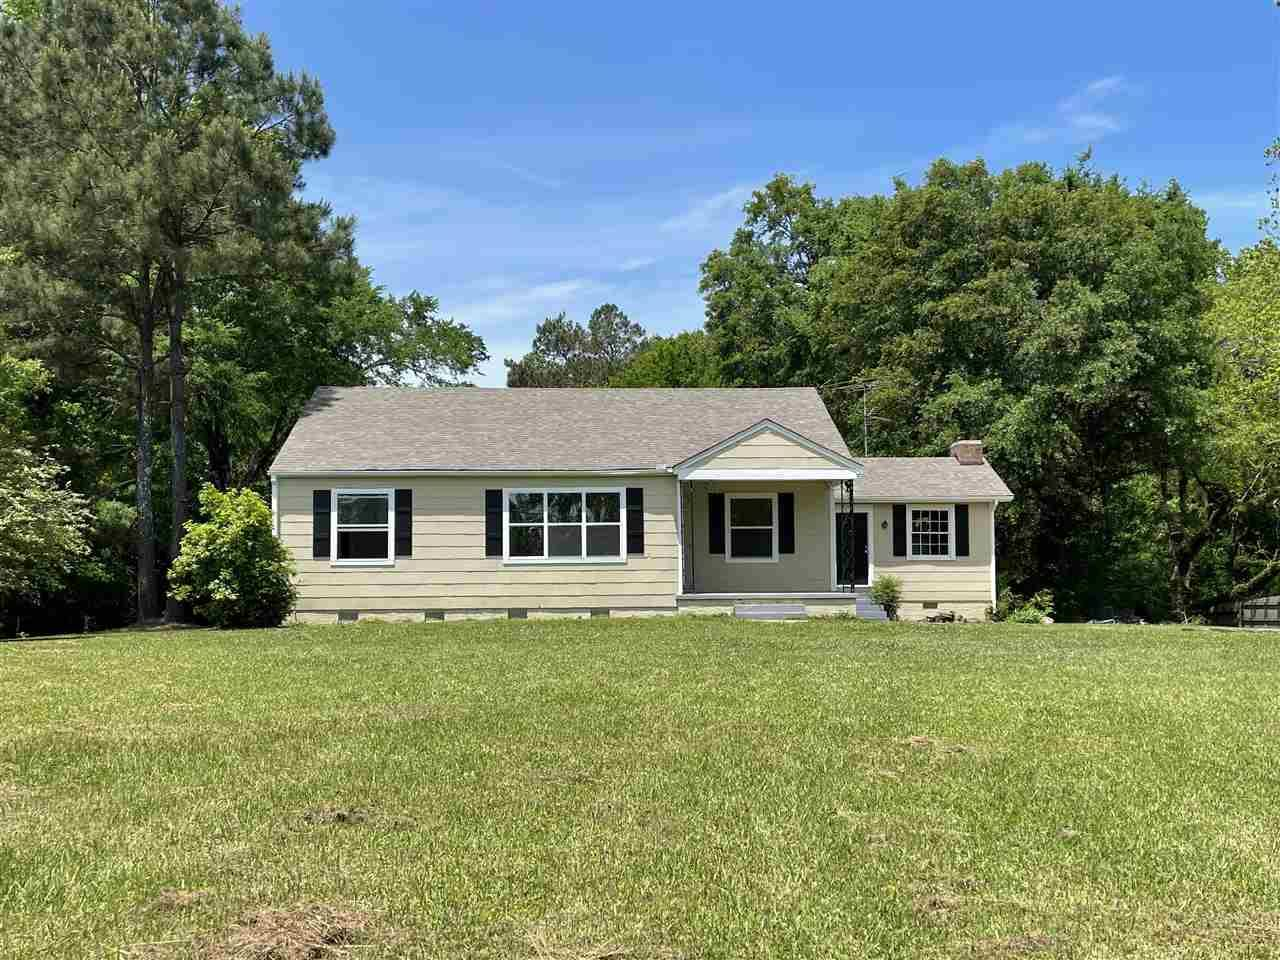 2091 GALLATIN RD, Hazlehurst, MS 39083 - MLS#: 335249